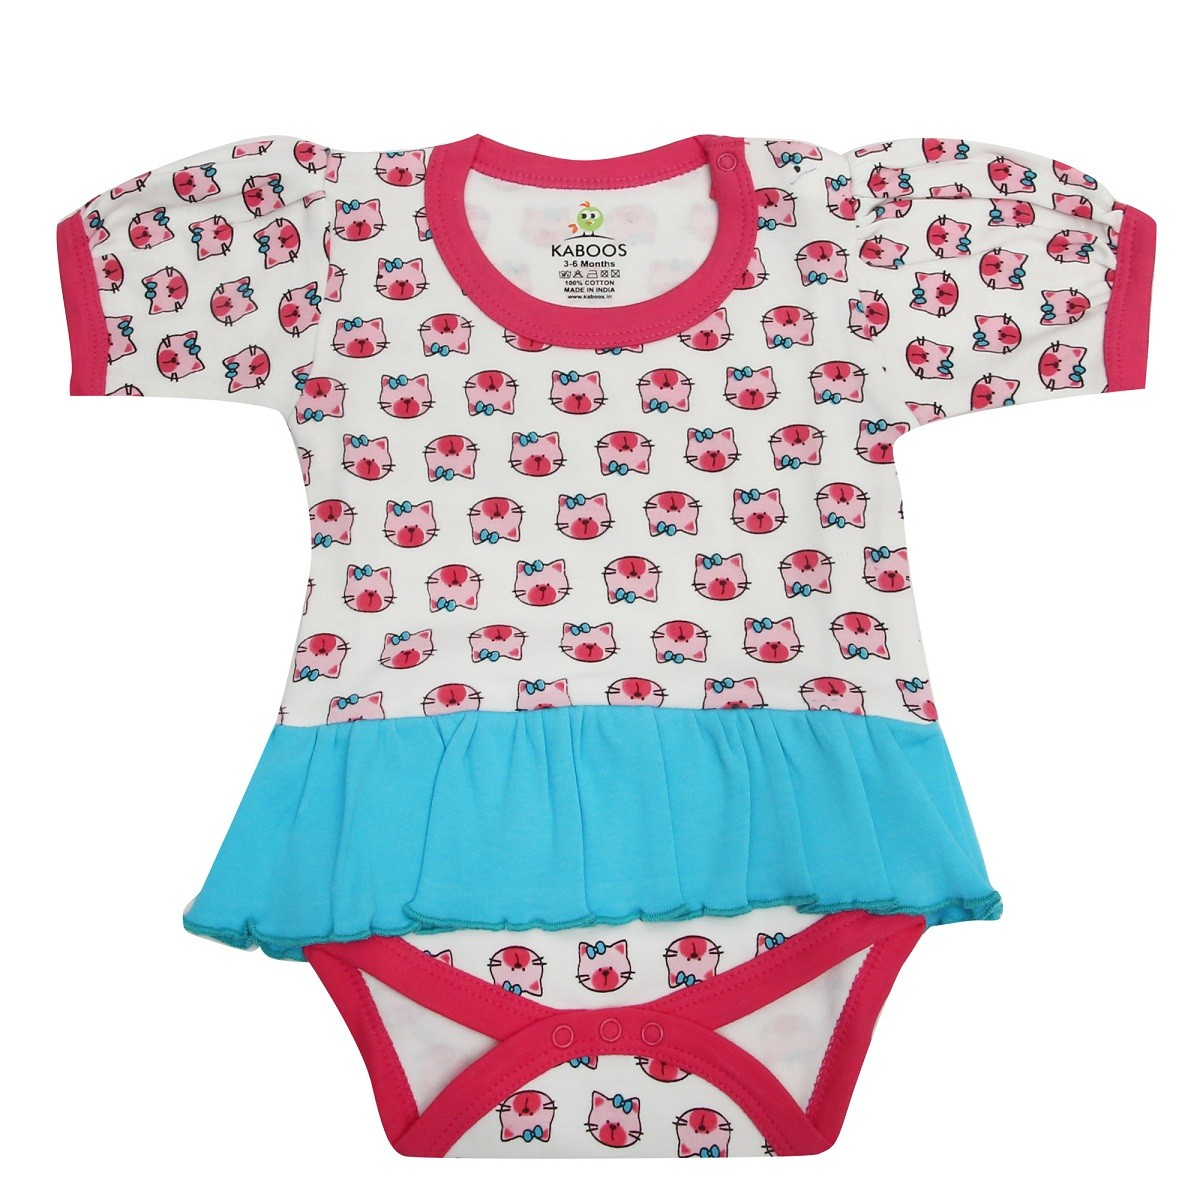 505ea60a007e 100% cotton over all printed romper for baby girl s